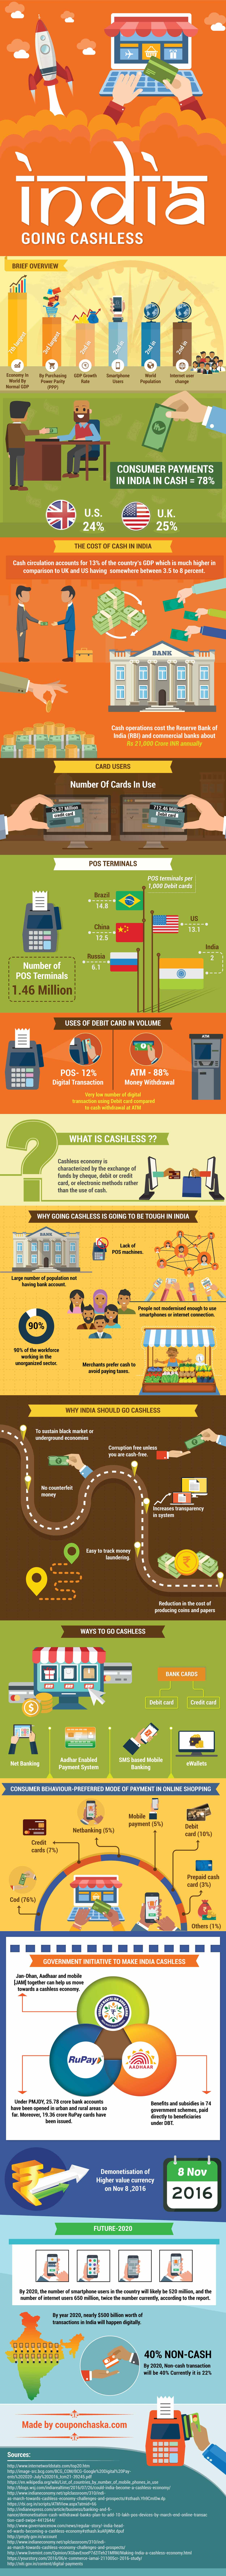 Future and Scope of Cashless Economy in India